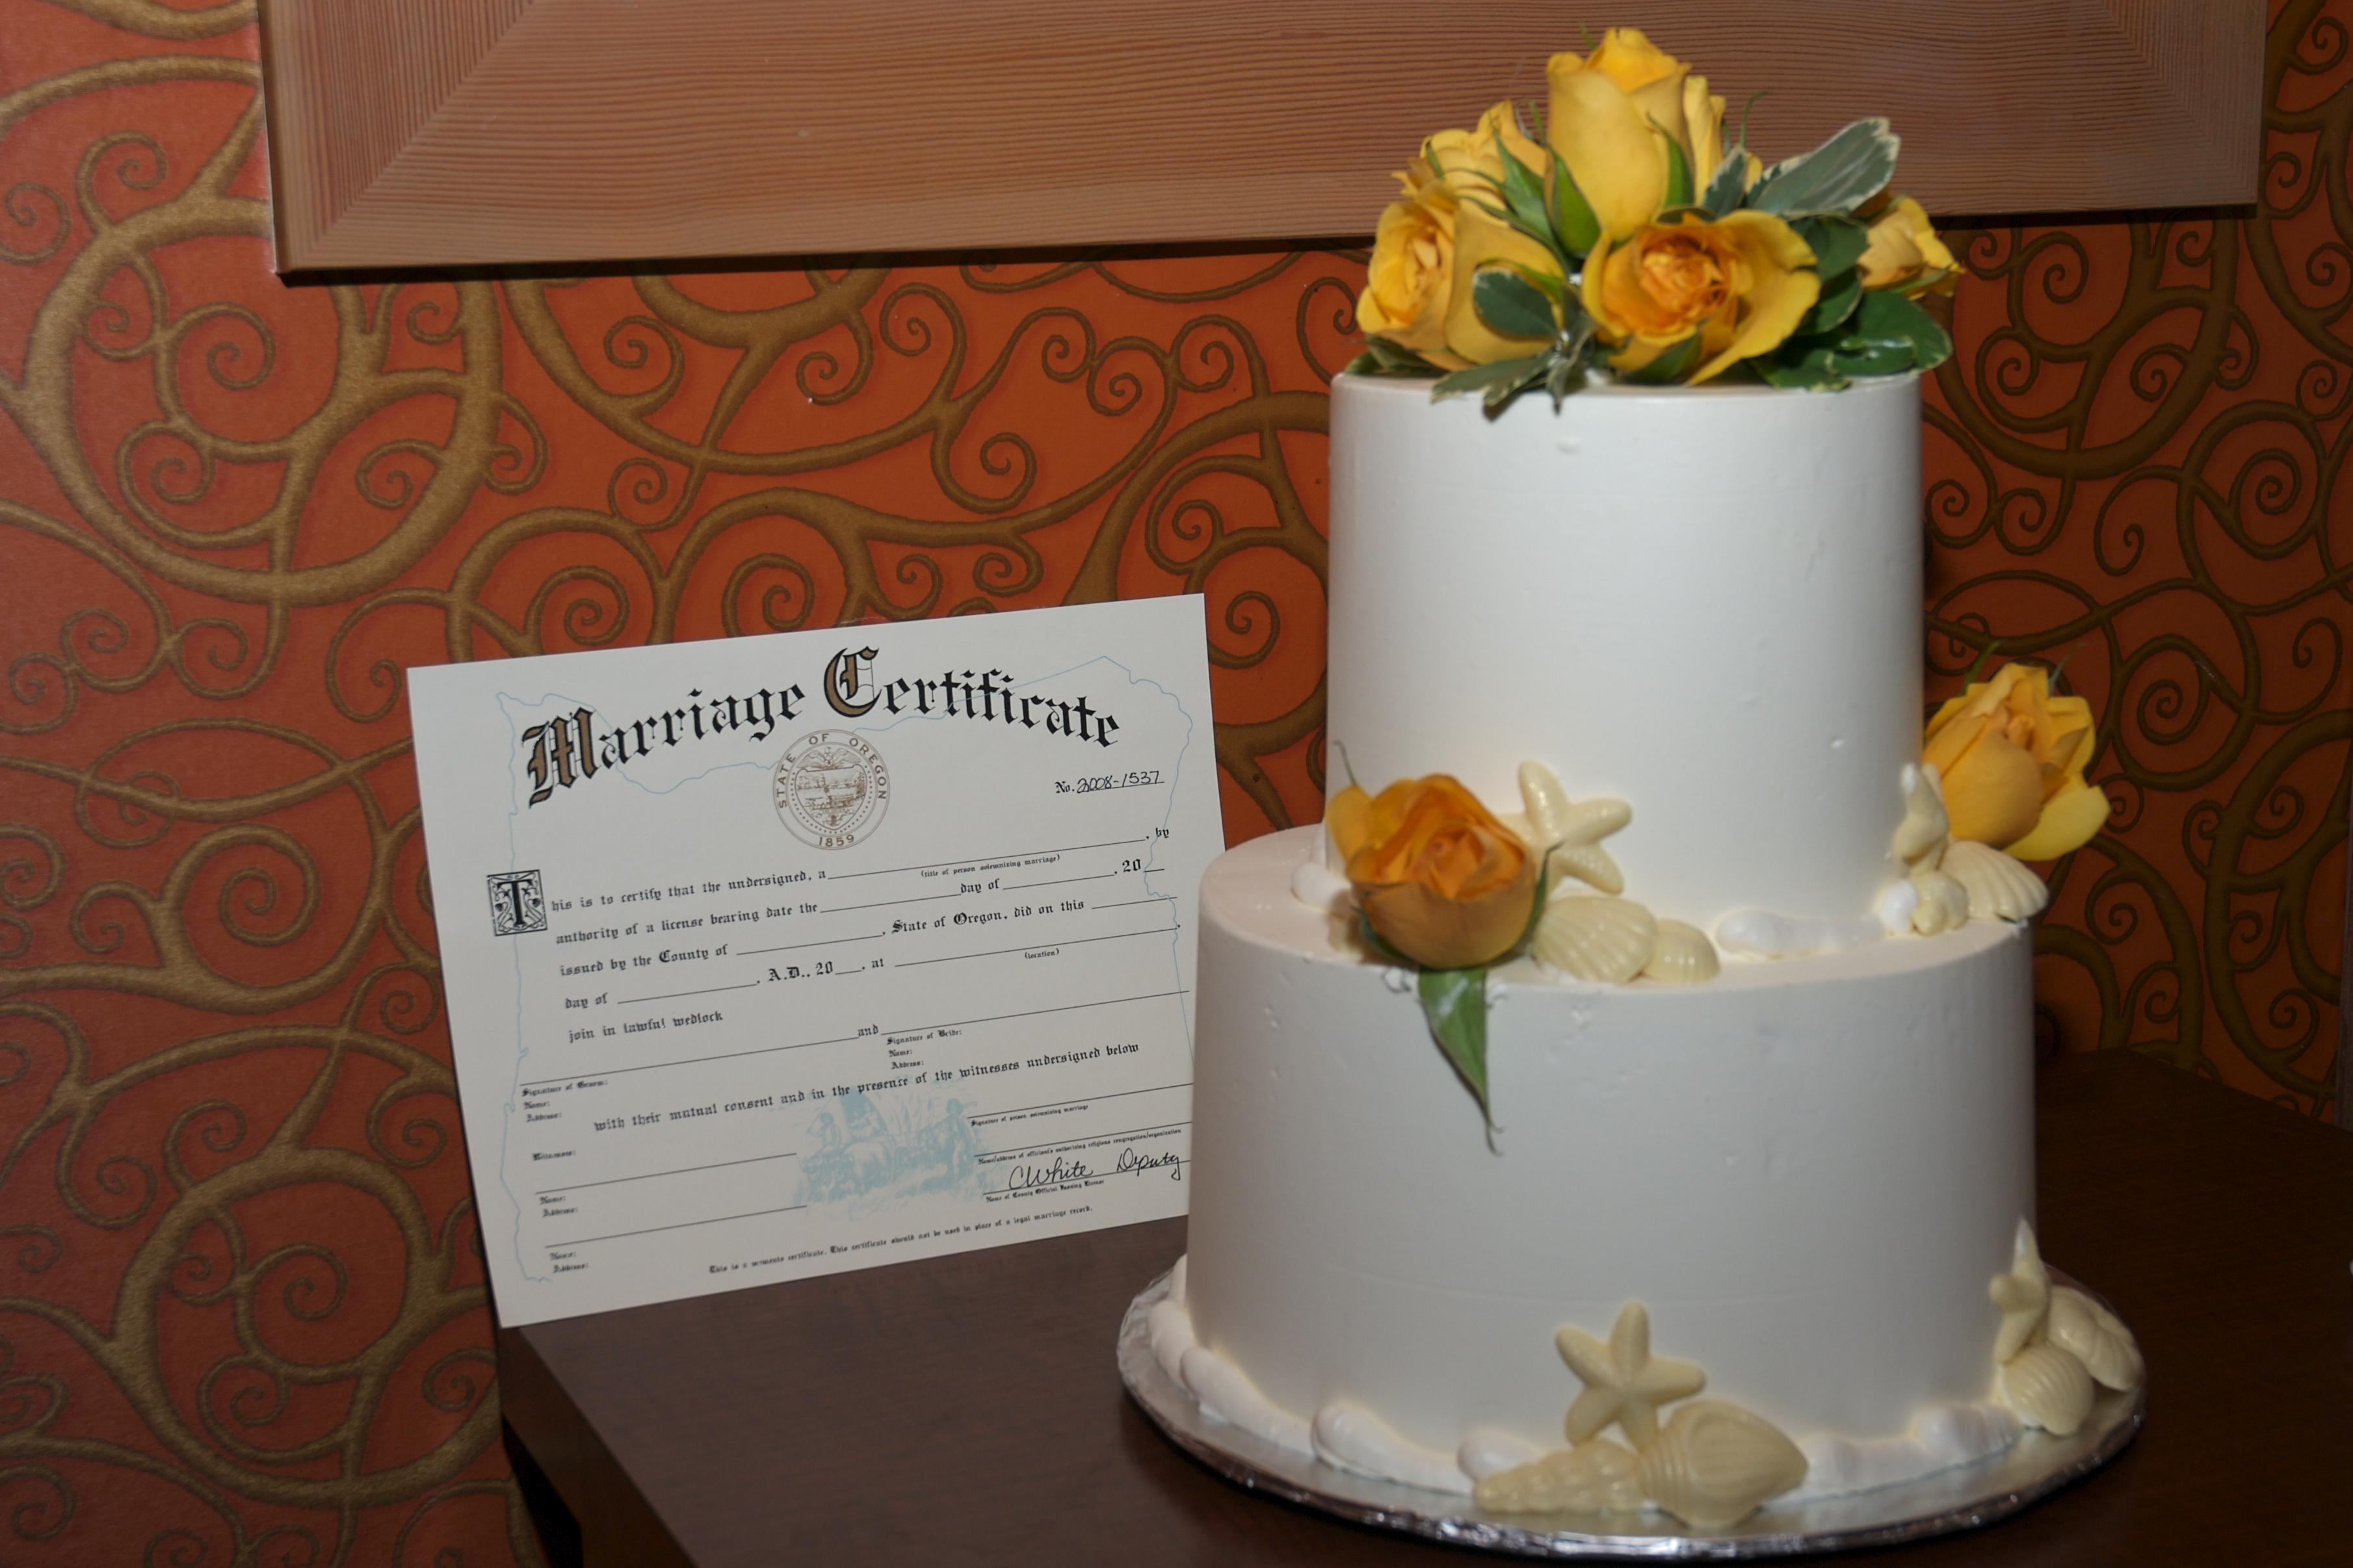 marriagelicense2.jpg